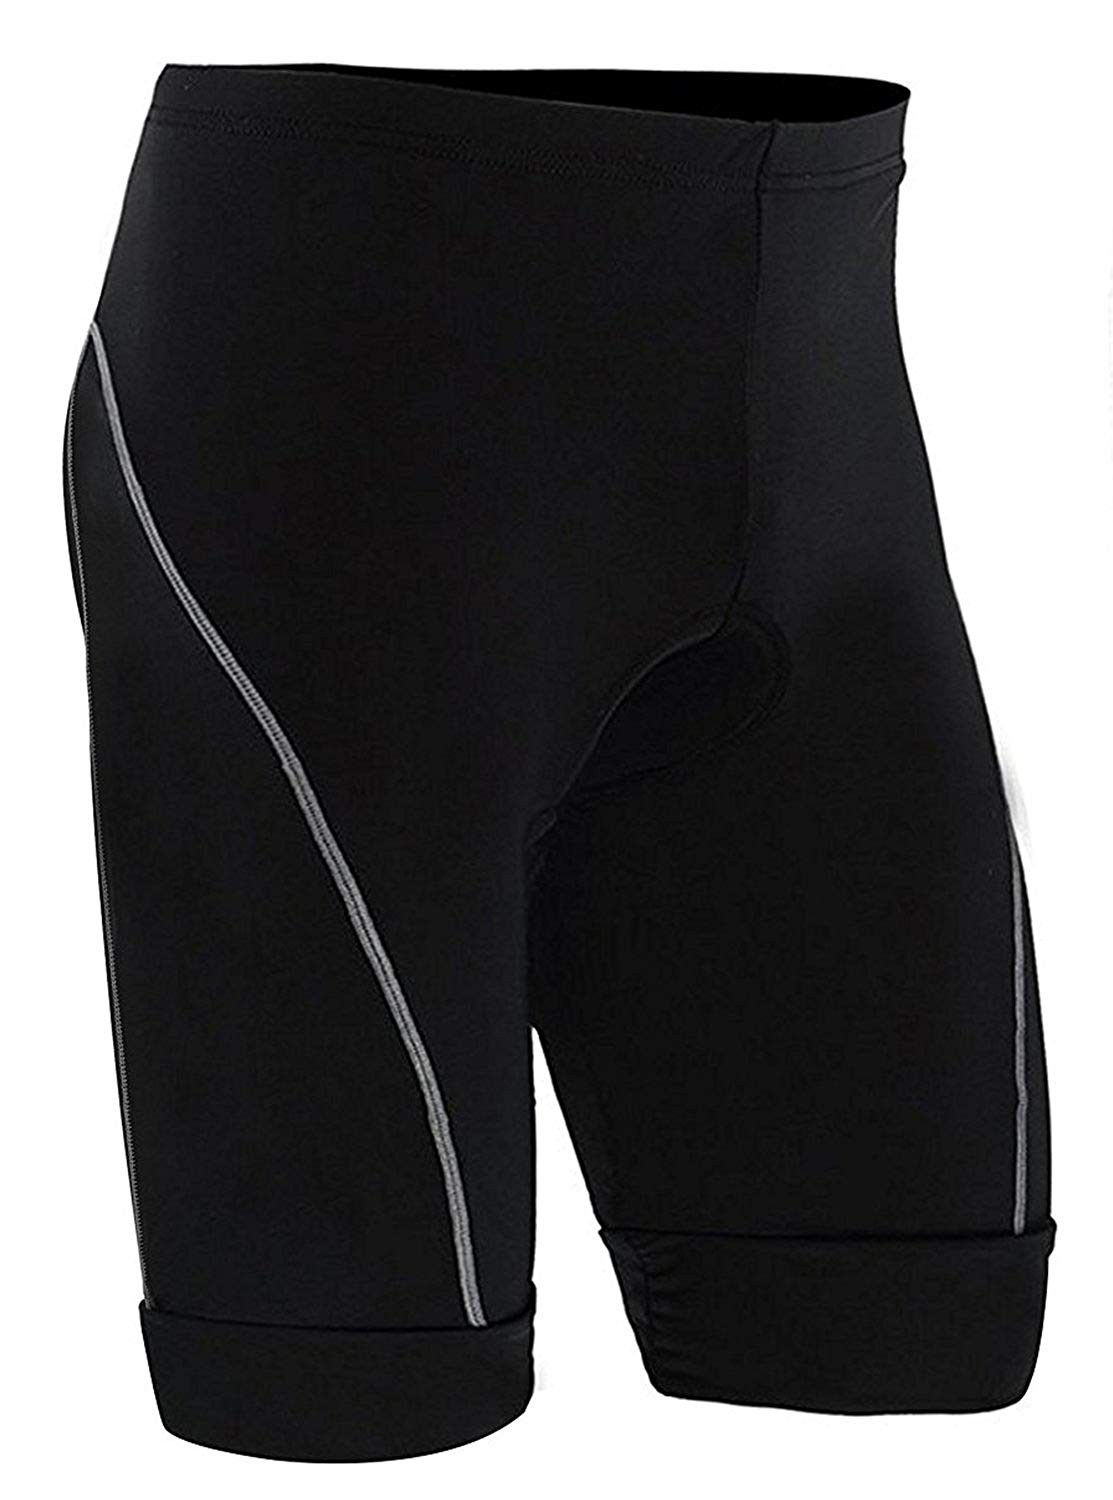 Mens Outdoors Padded Cycling Underwear Underpants Shorts